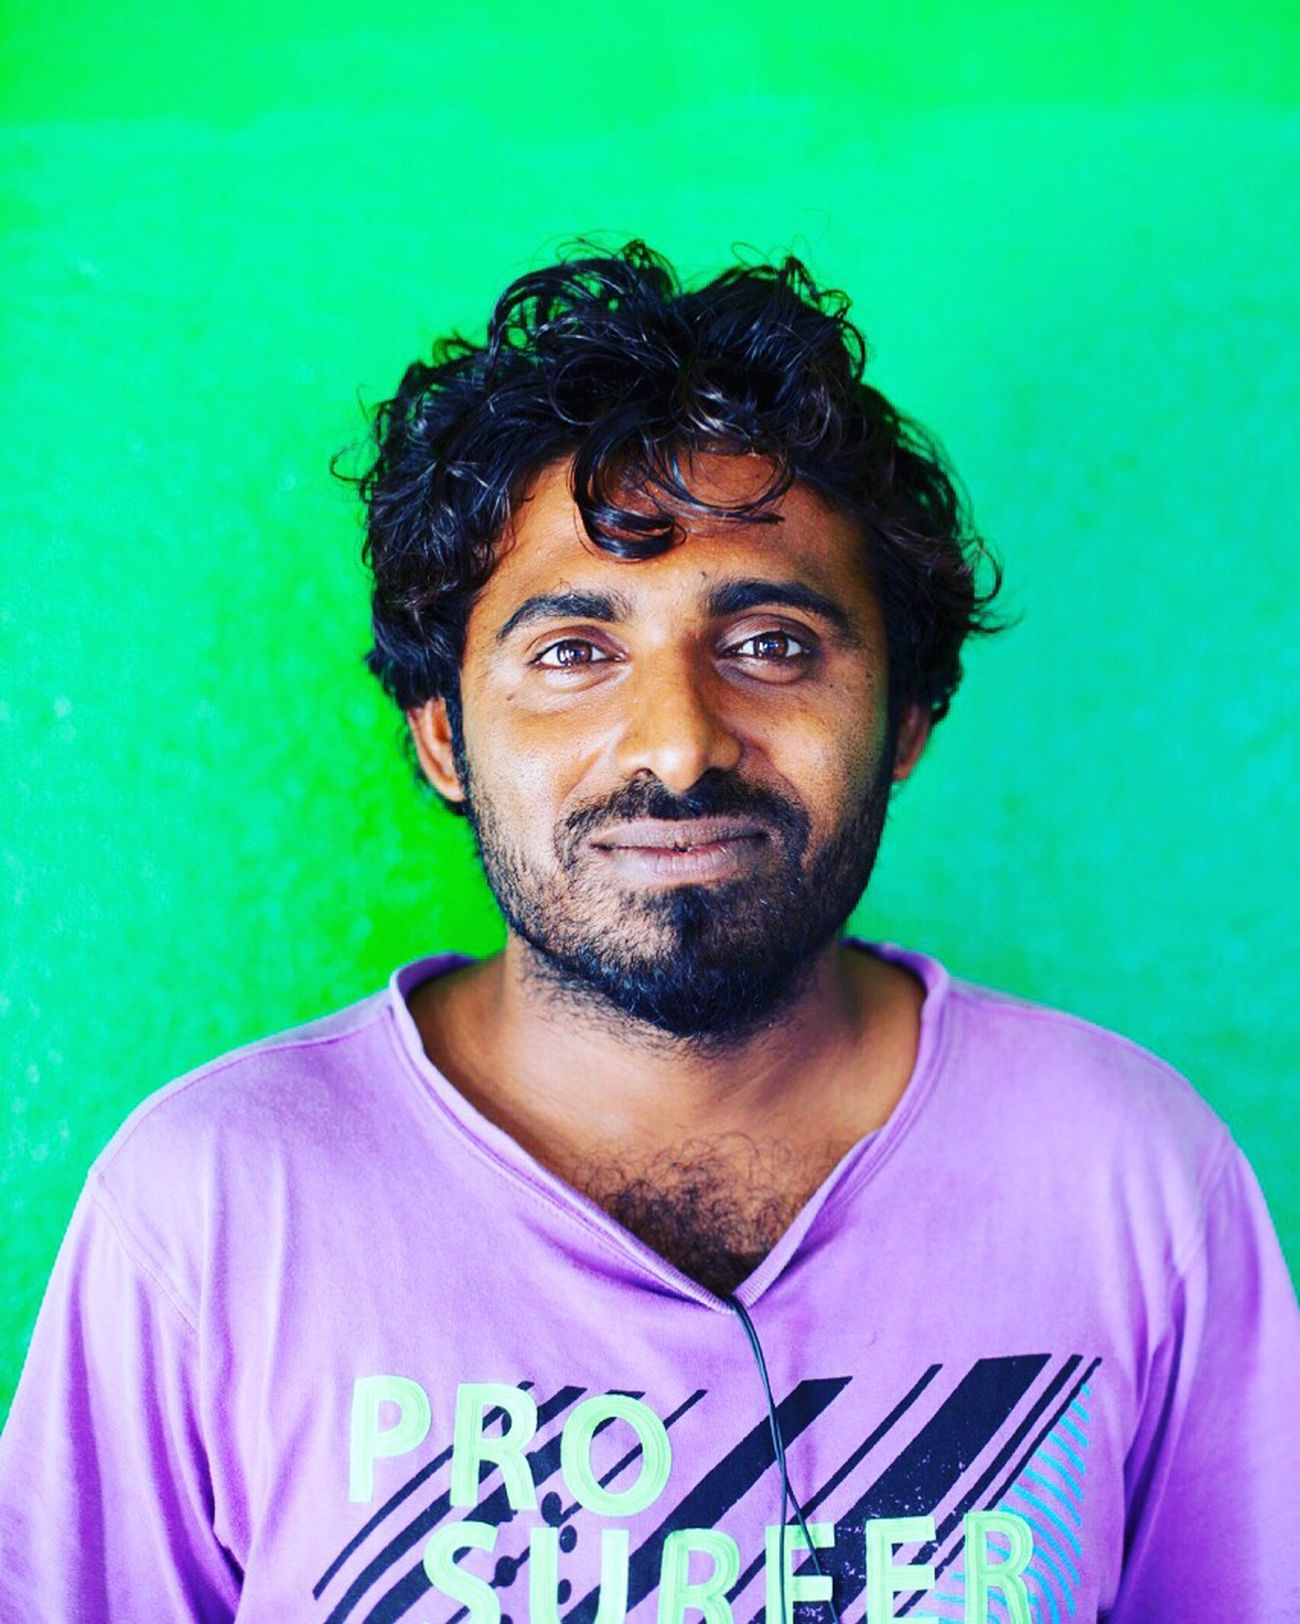 Nisham. Captain of our boat in the maldives. Surf Traveling Adventure Maldives Surfing Portrait People People Photography LiveTheSearch Love